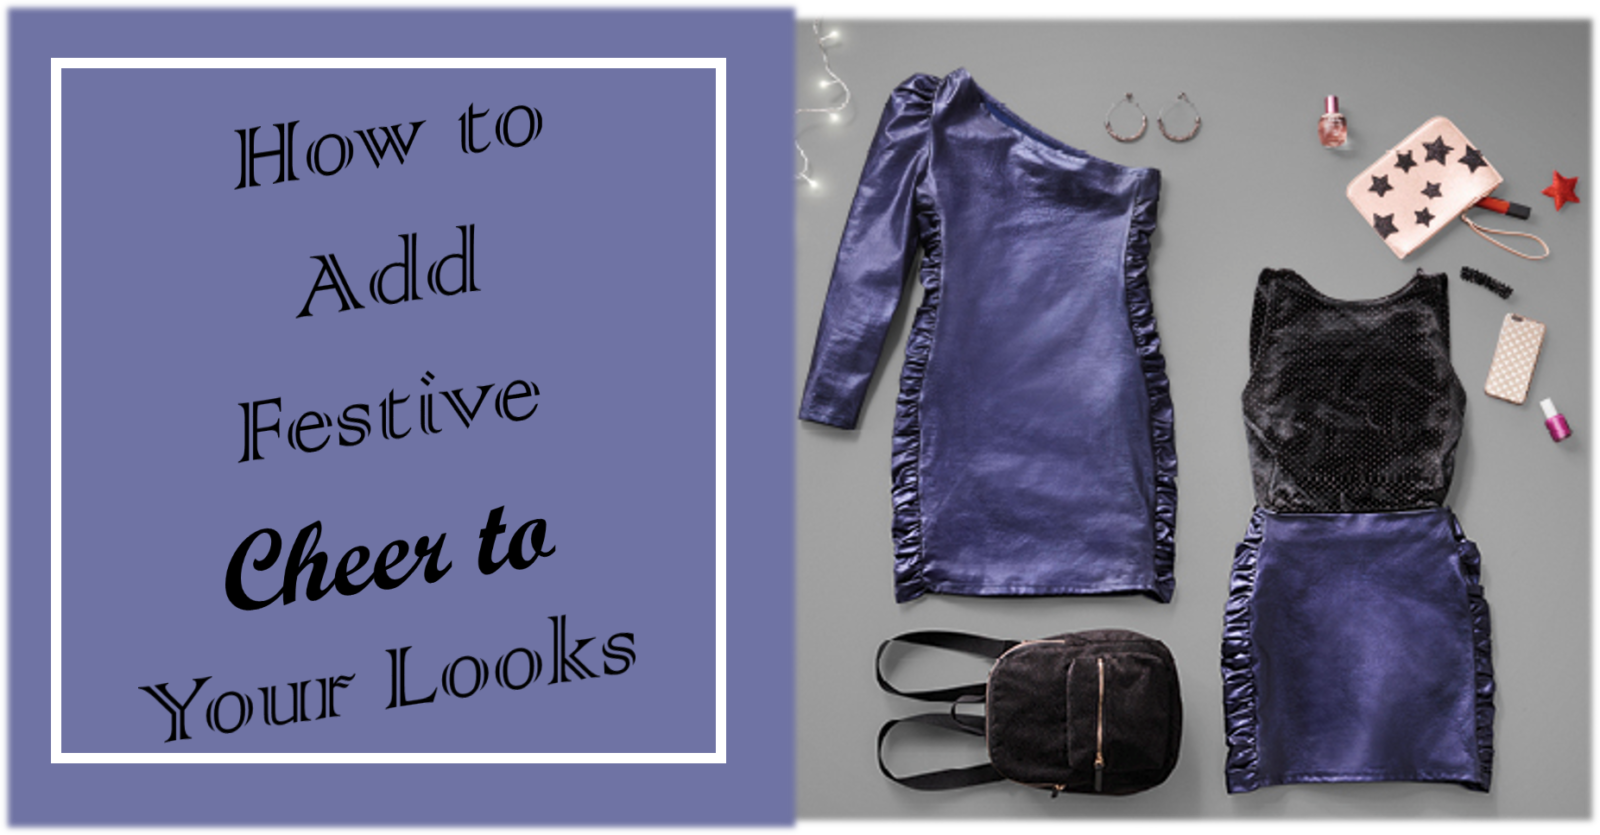 How to Add Festive Cheer to Your Looks